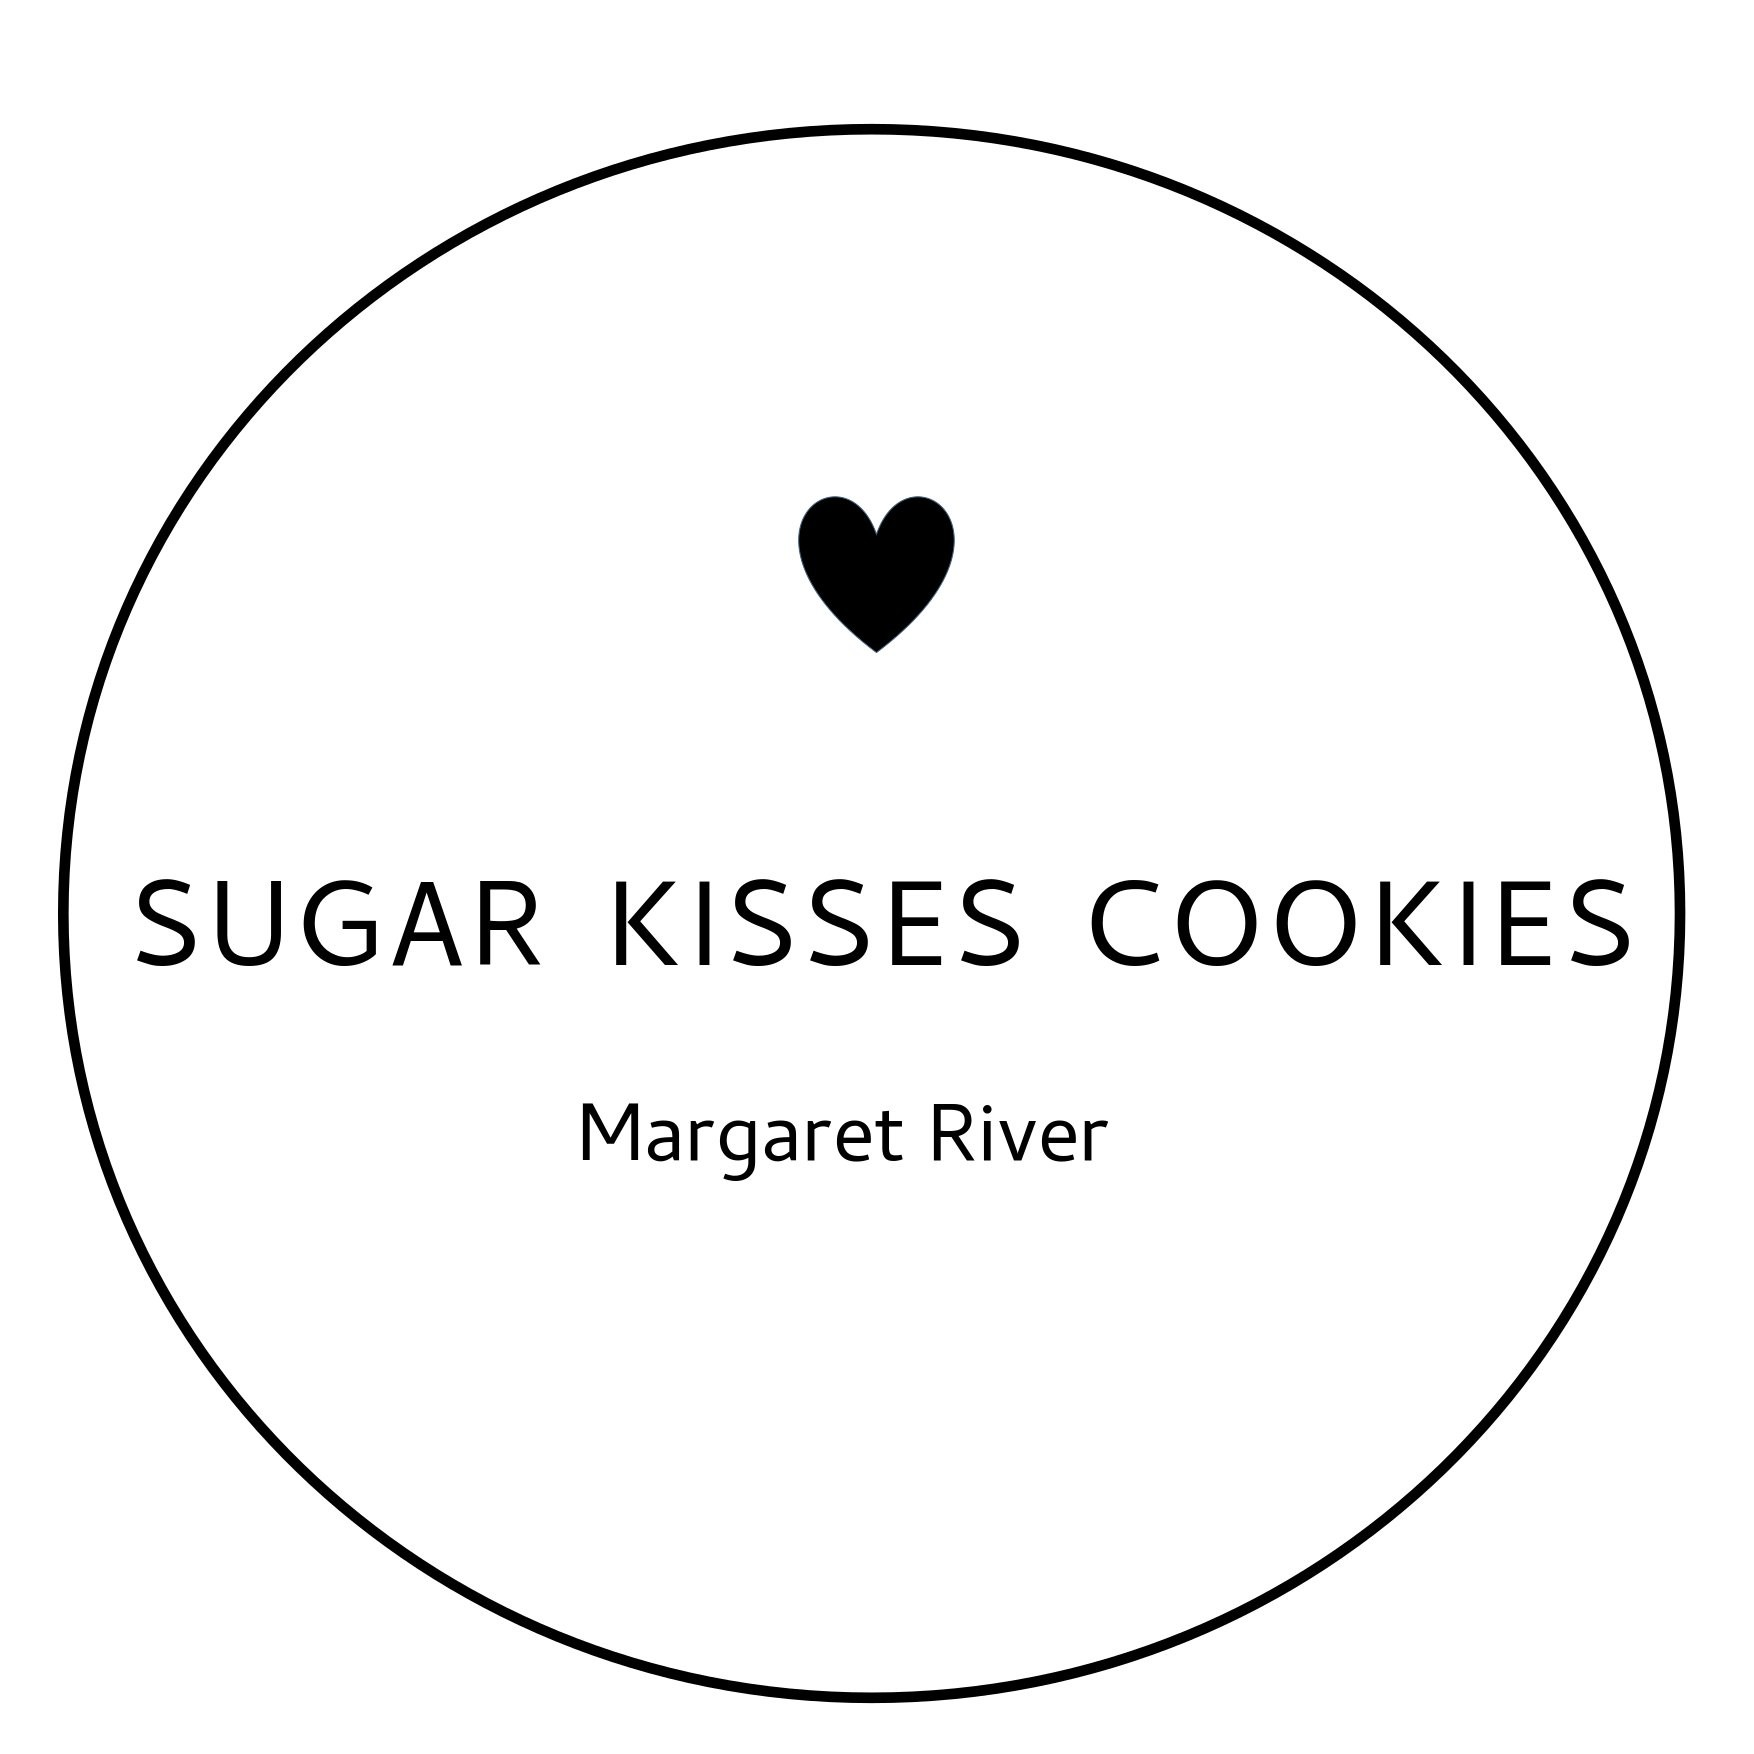 Sugar_Kisses_Cookies (3)